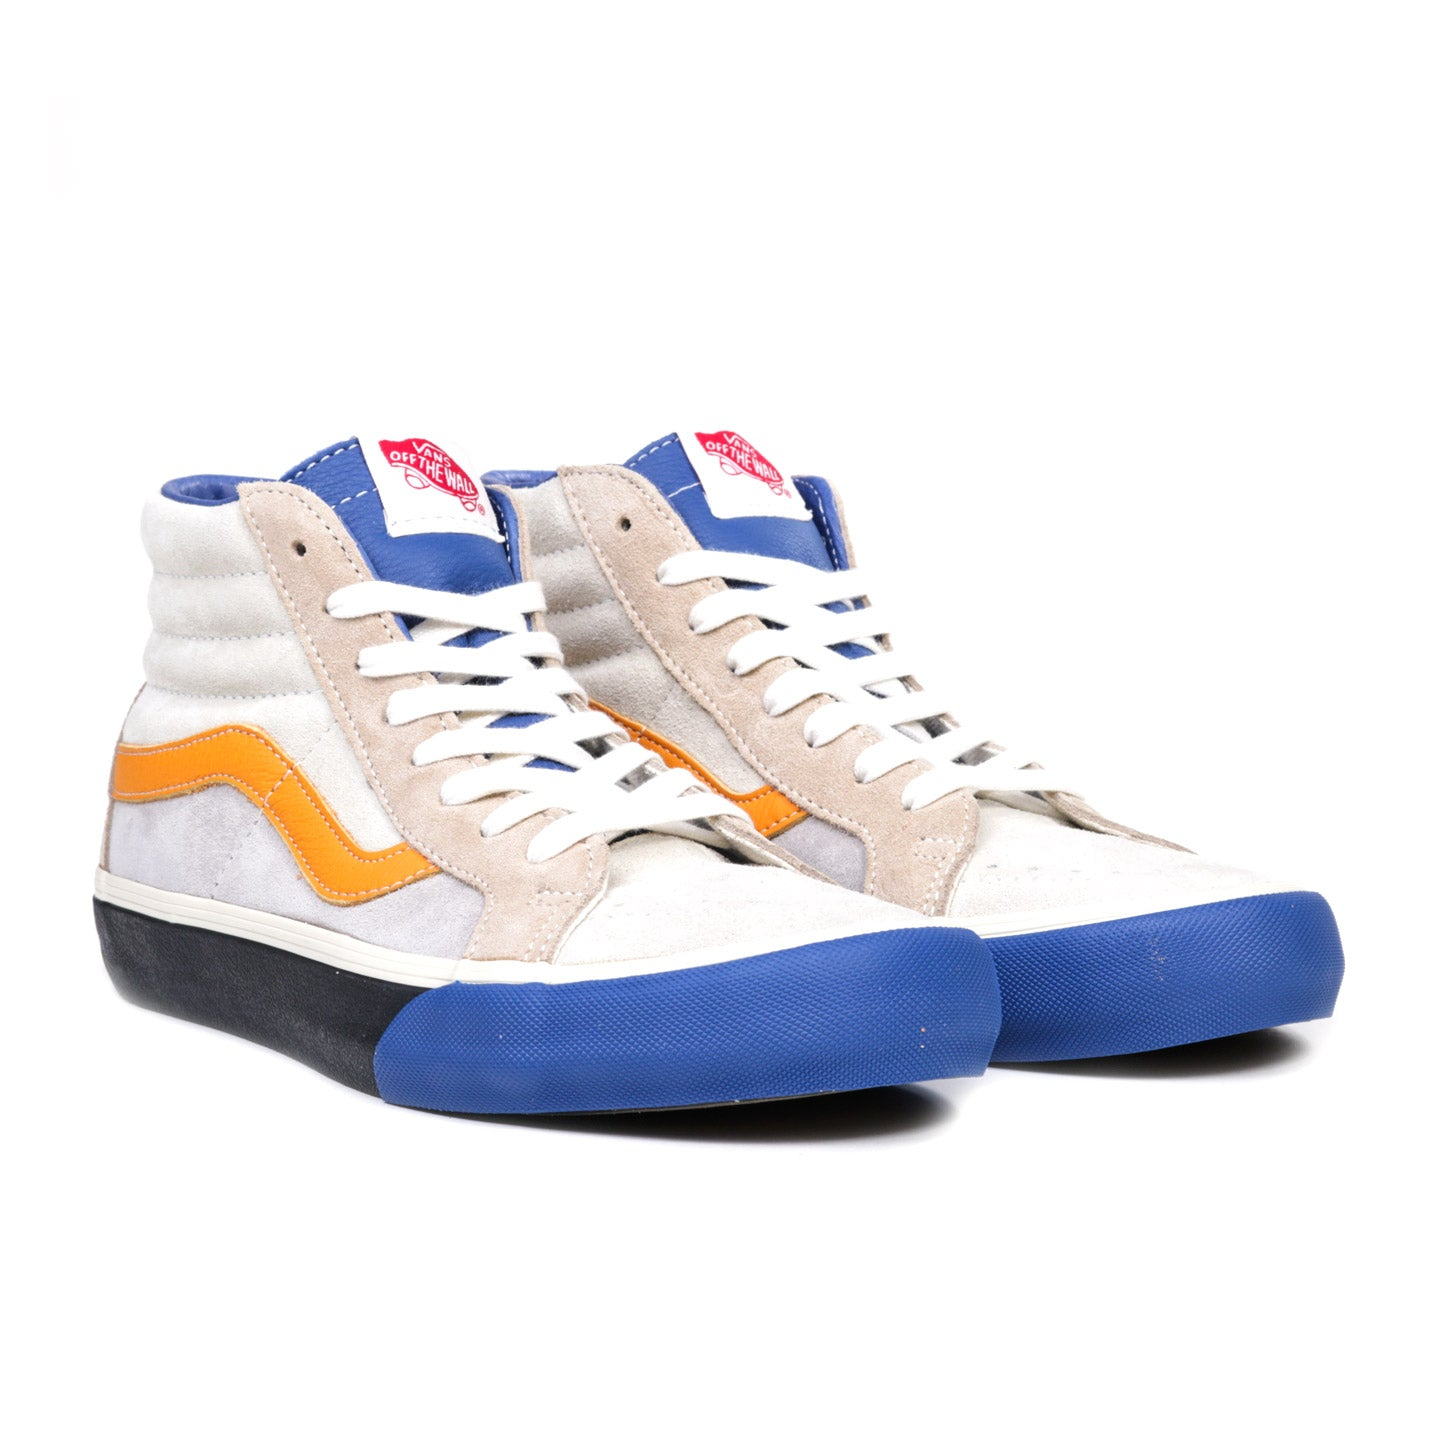 VAULT BY VANS SK8-HI REISSUE LX TRUE BLUE / GINGER